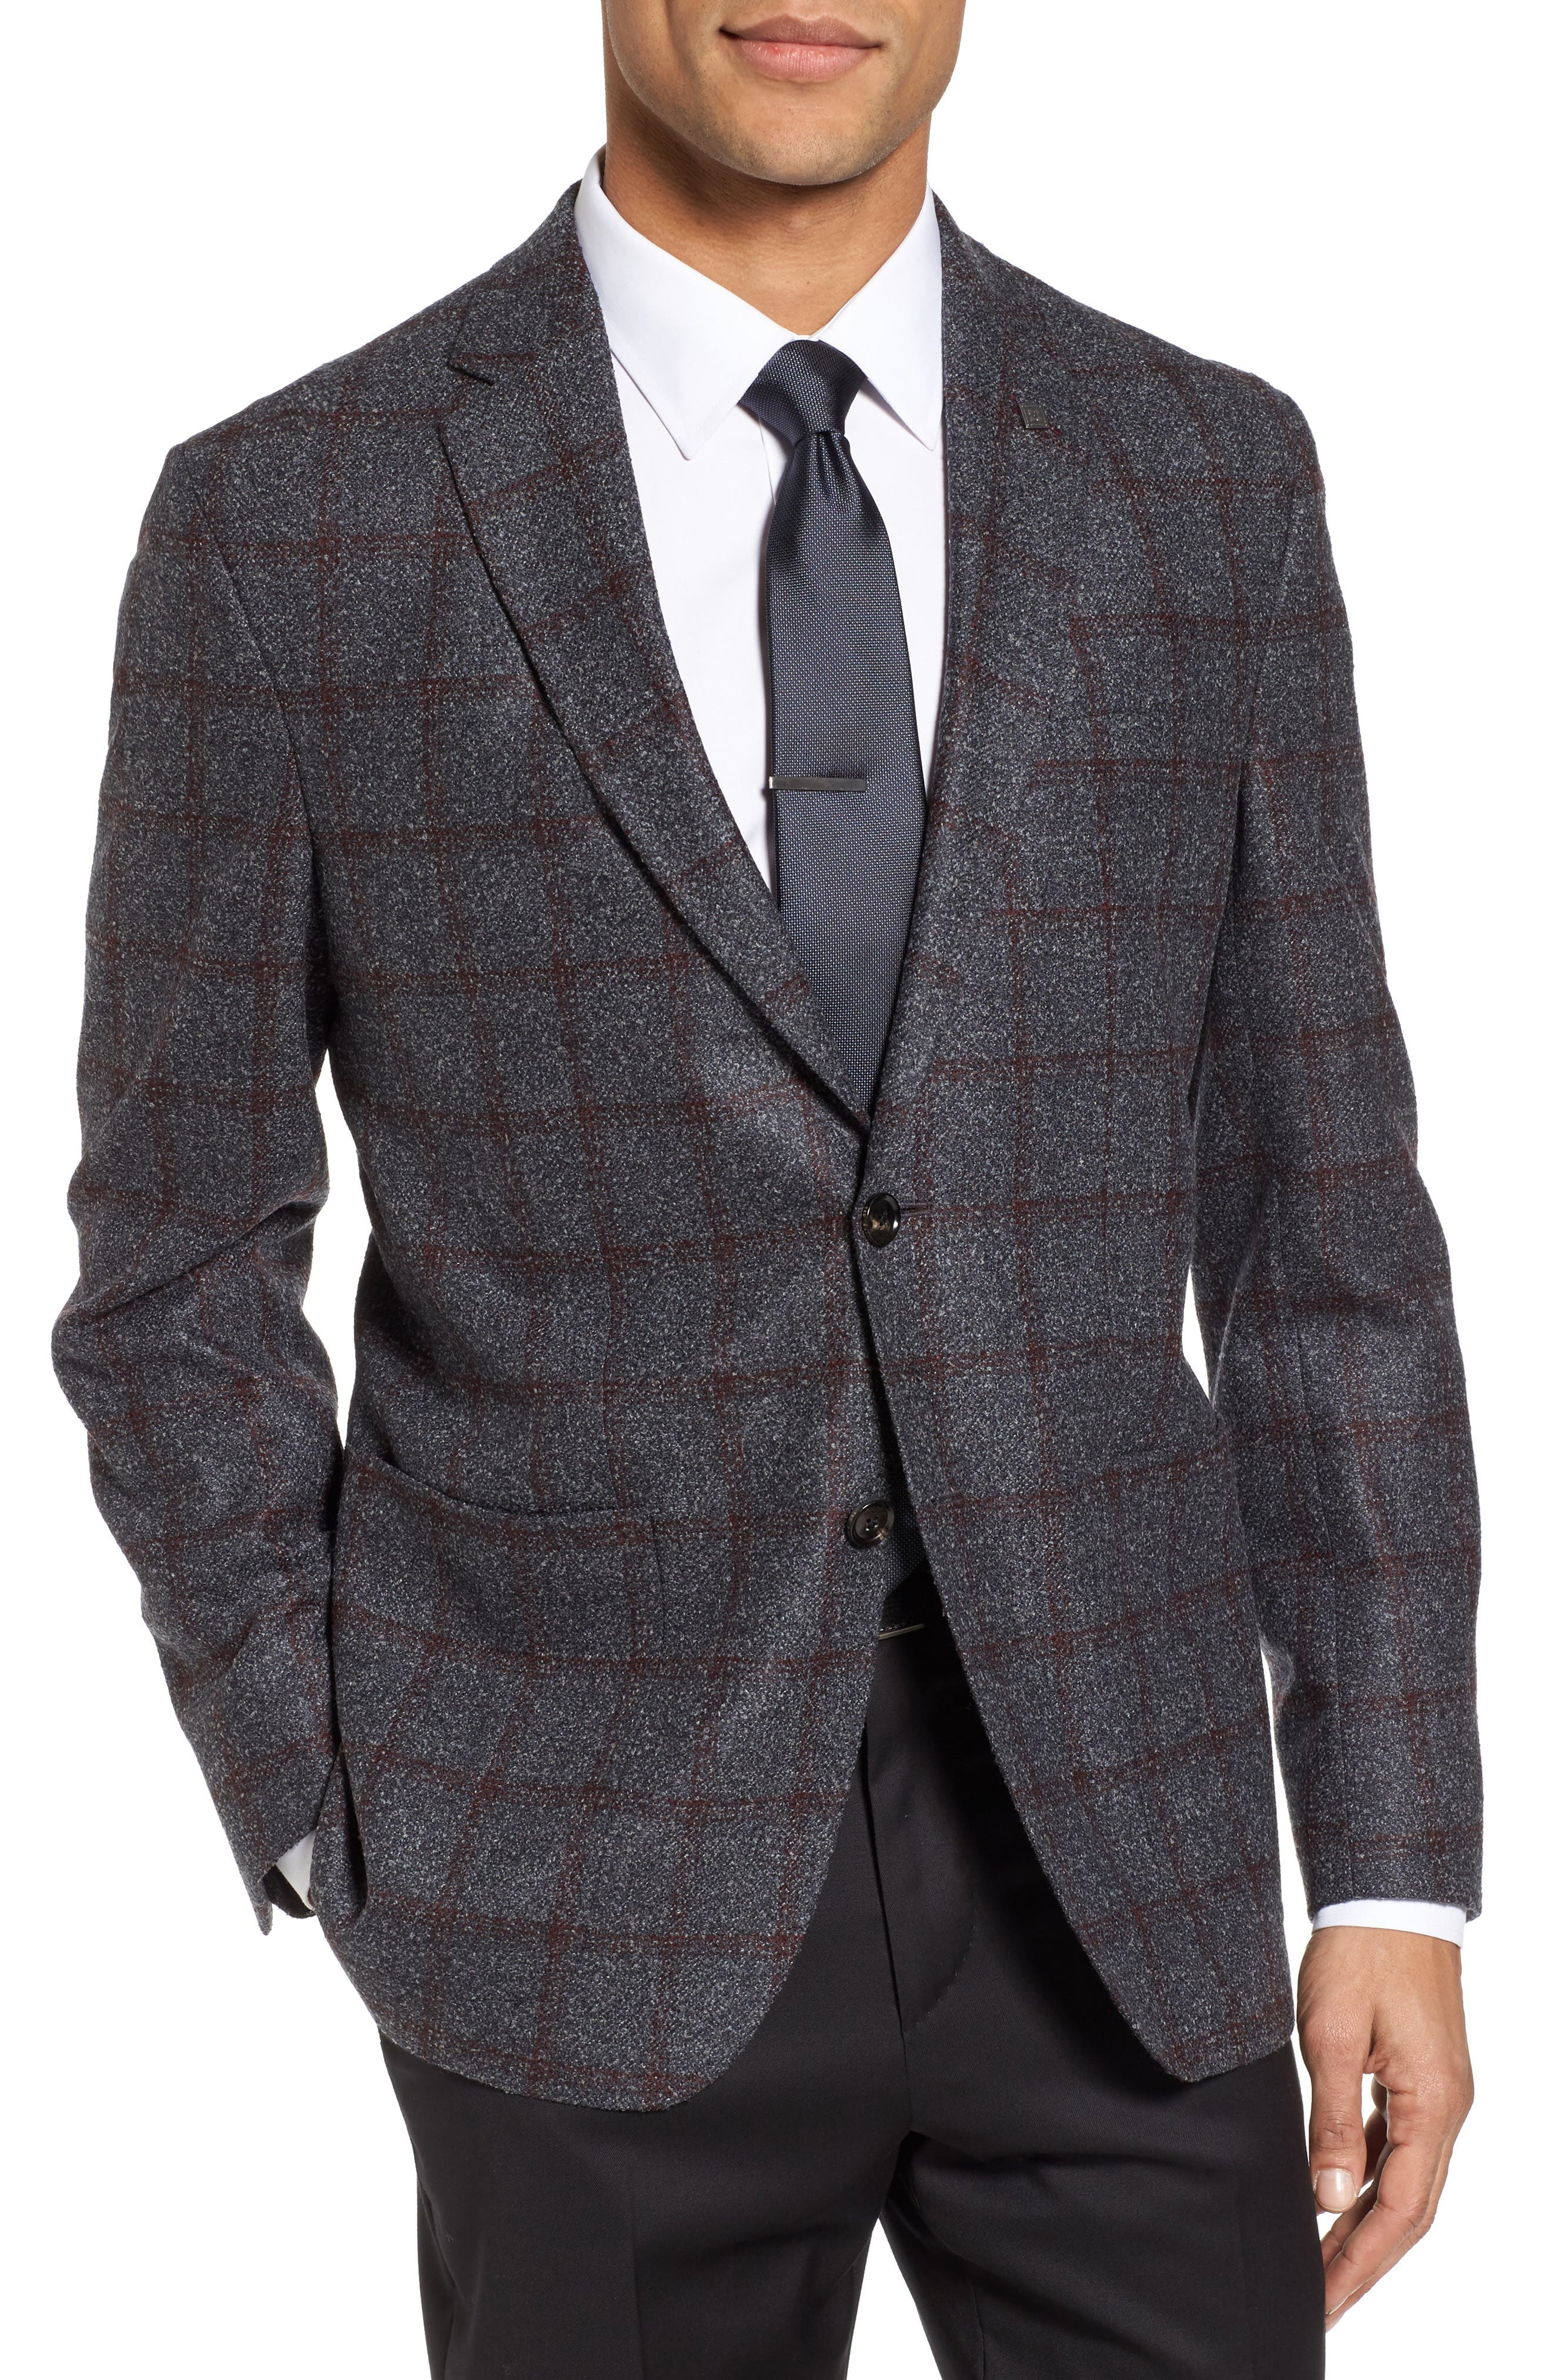 Kyle Trim Fit Windowpane Wool Blend Sport Coat,                         Main,                         color, 020